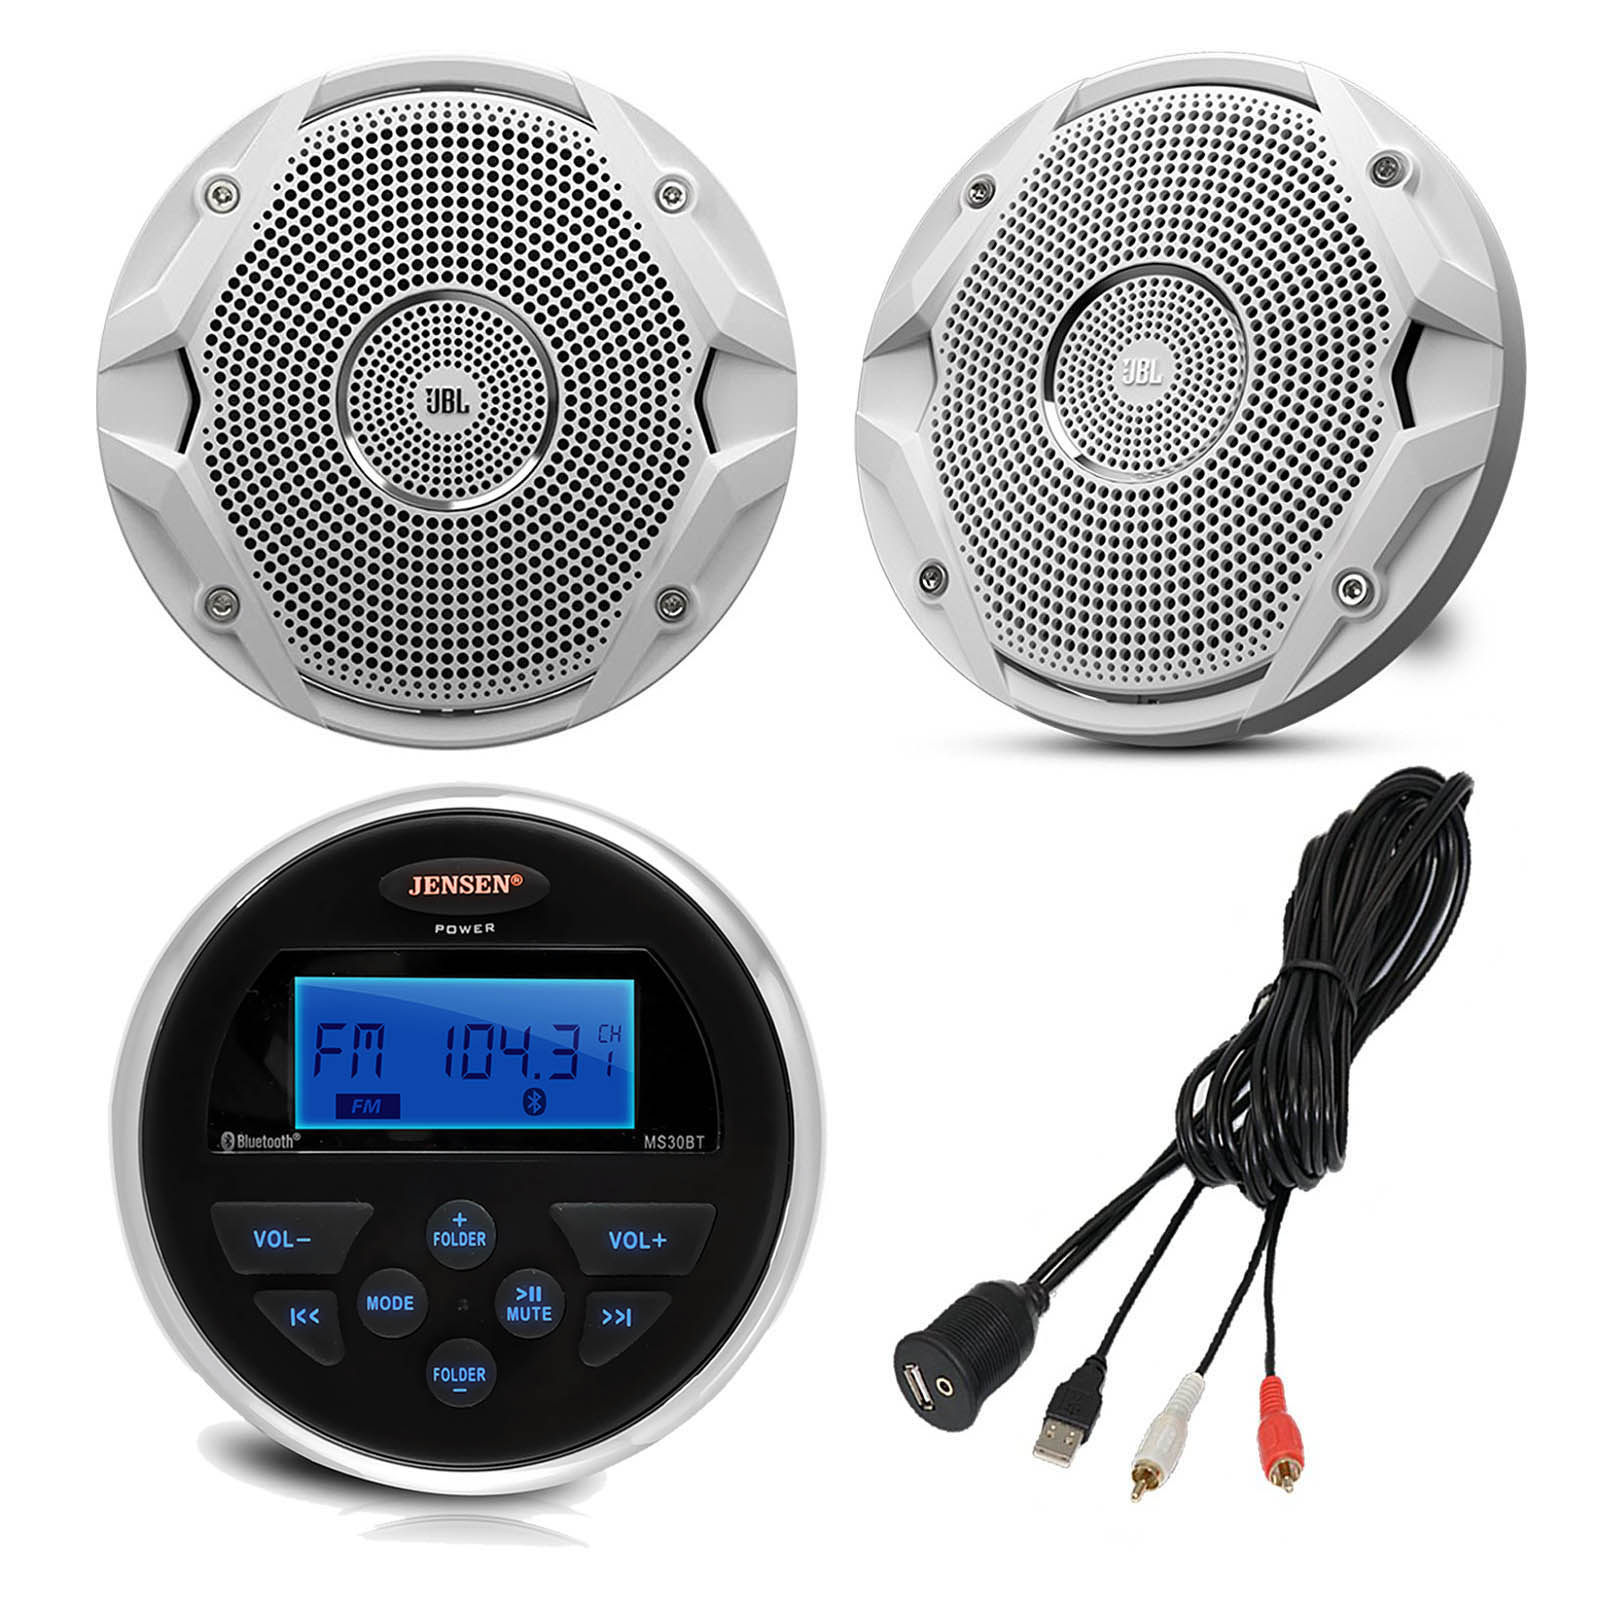 "Jensen MS30BTR Gauge Style Marine Yacht ATV Motorcycle Waterproof Stereo Bundle Combo With 2x JBL MS6510 6.5"" Inch Boat Speakers + Enrock Universal USB / AUX To RCA 10"" Extension Cable"